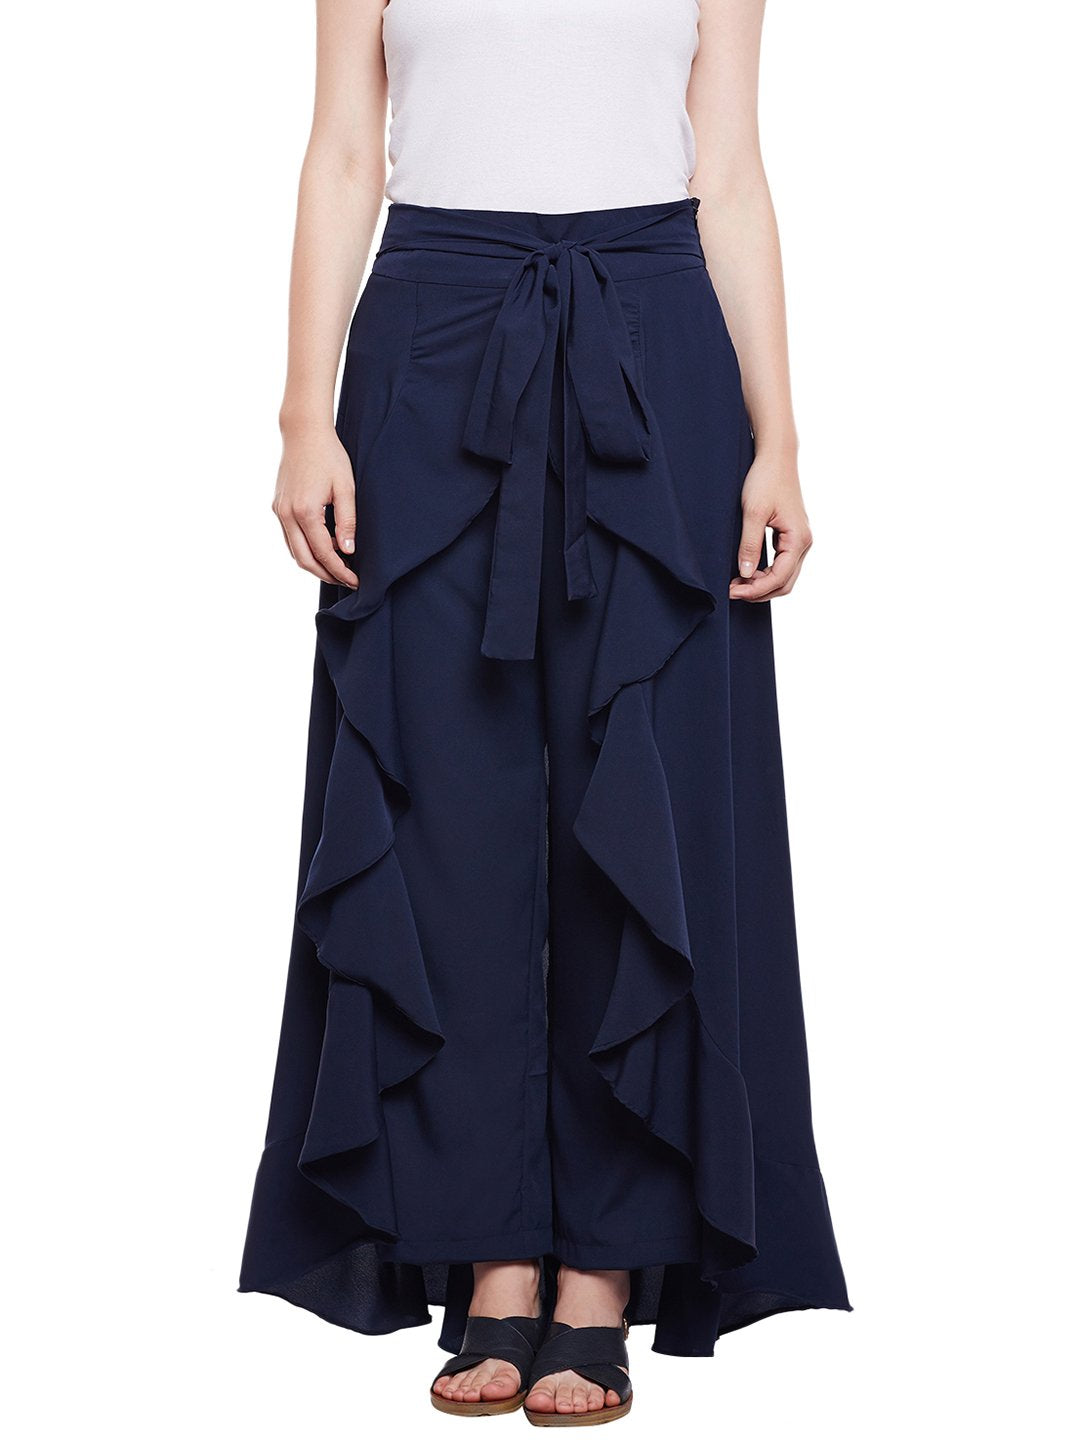 Castle Navy Blue Solid Ruffle Palazzo Pant